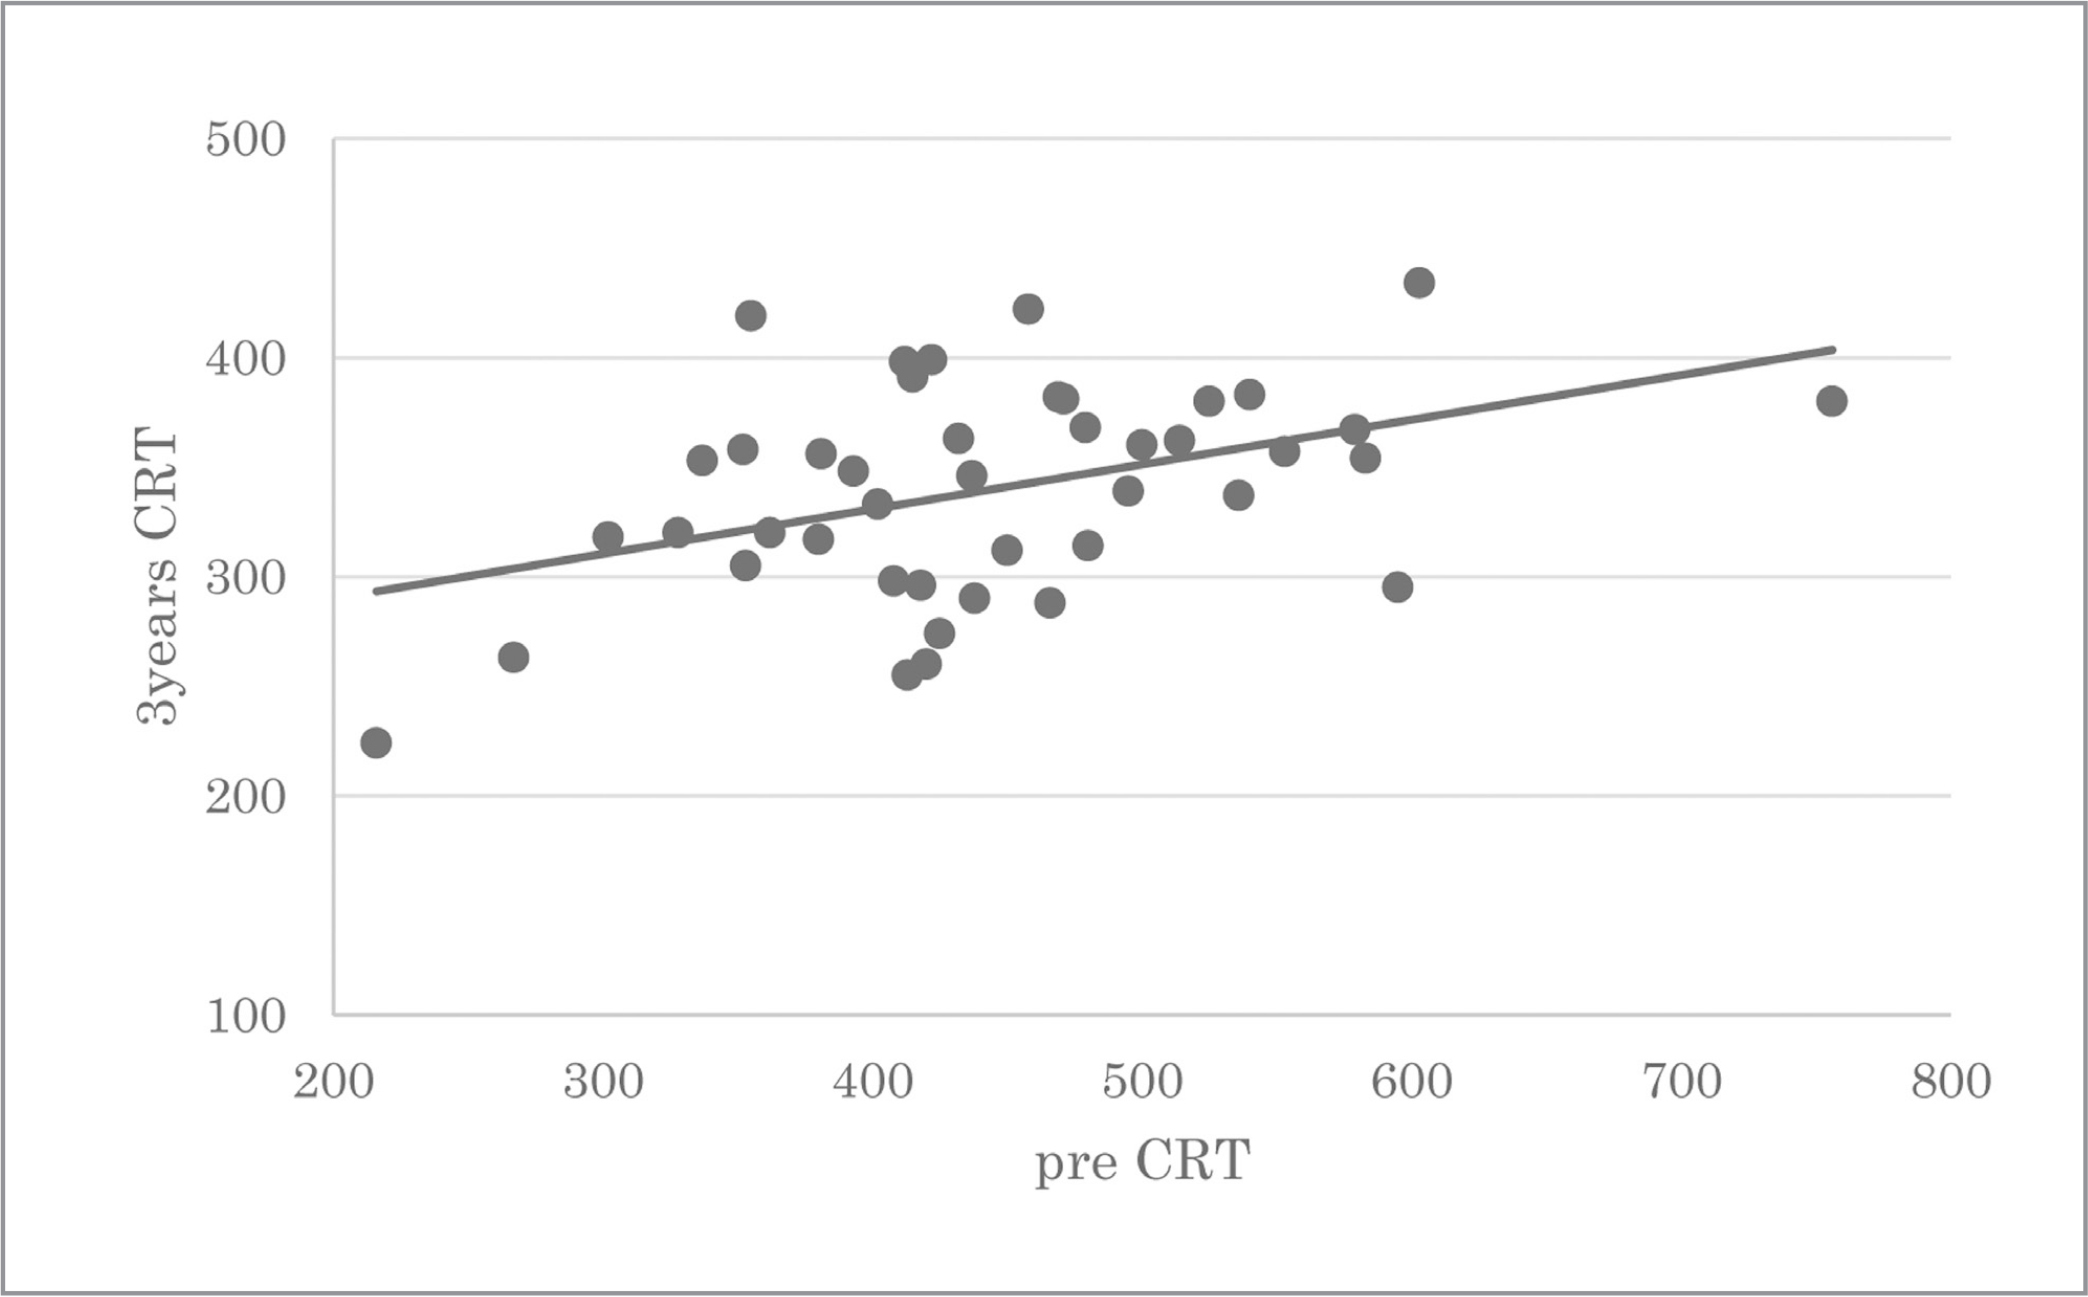 Correlation of pre-central retinal thickness (CRT) and 3-year CRT. The Spearman rank correlation showed that the 3-year CRT was significantly correlated with the pre-CRT (r = 0.42, P = .02).